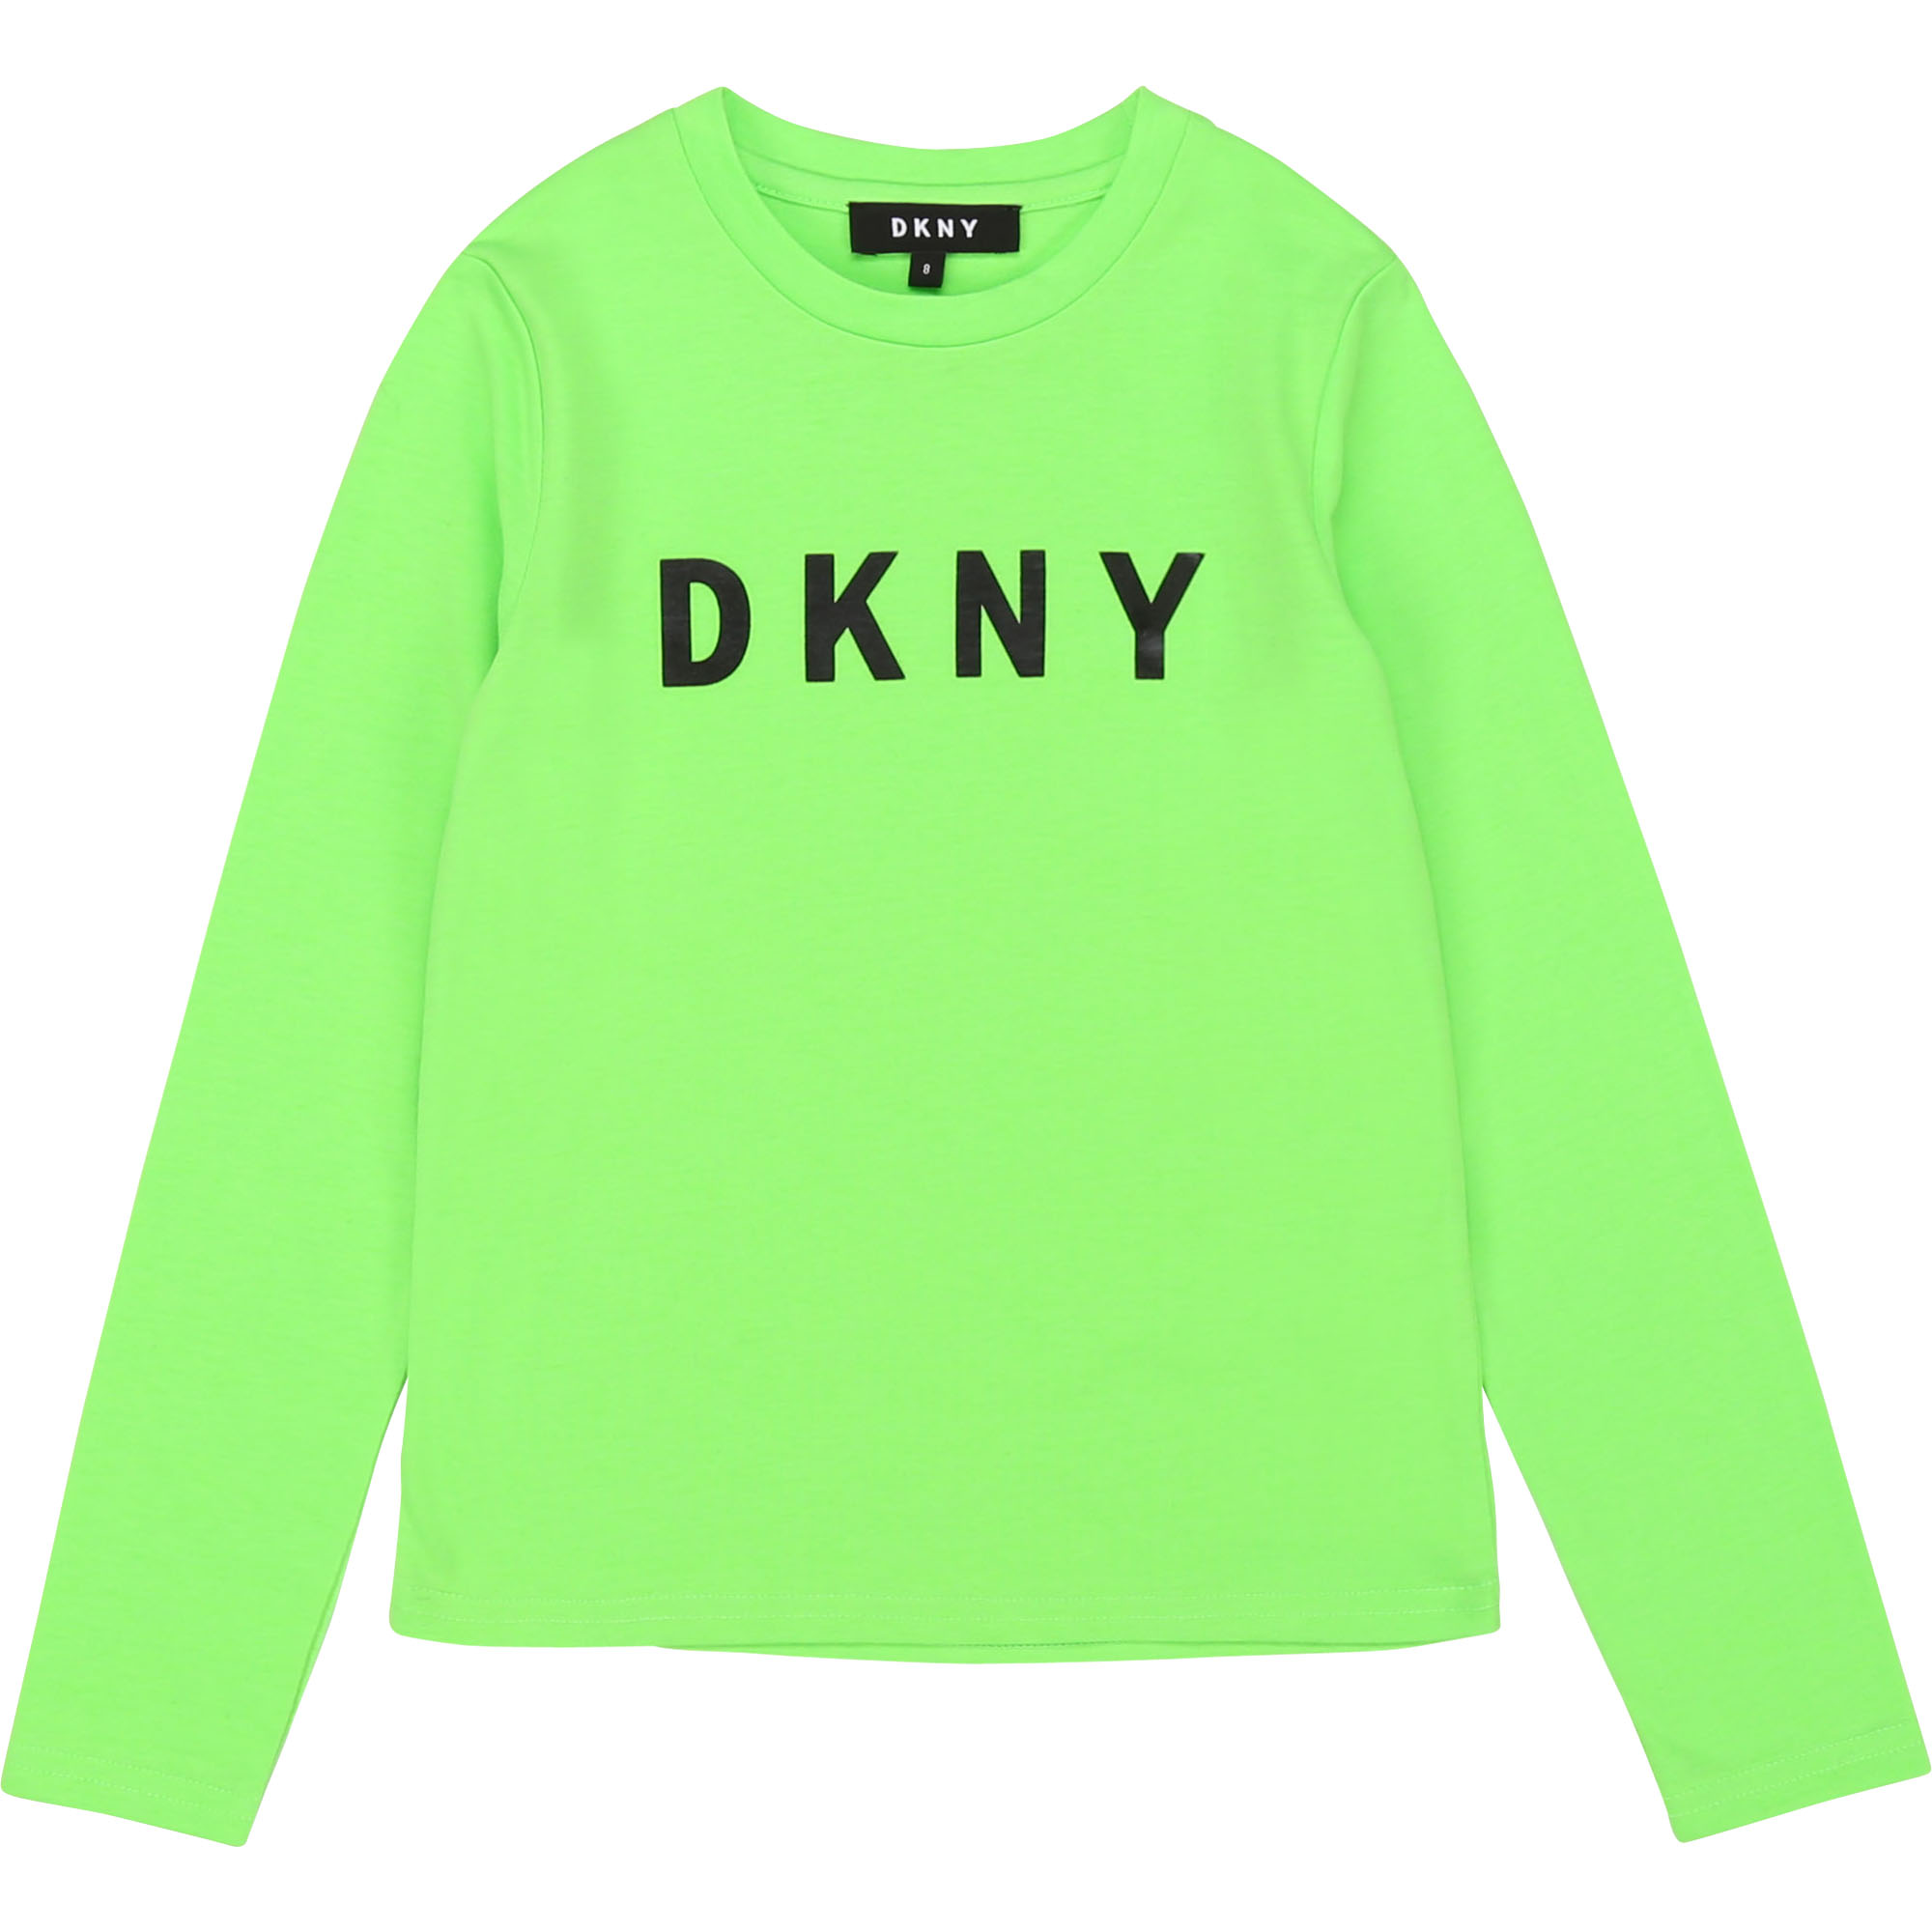 T-shirt in jersey con stampa DKNY Per BAMBINA